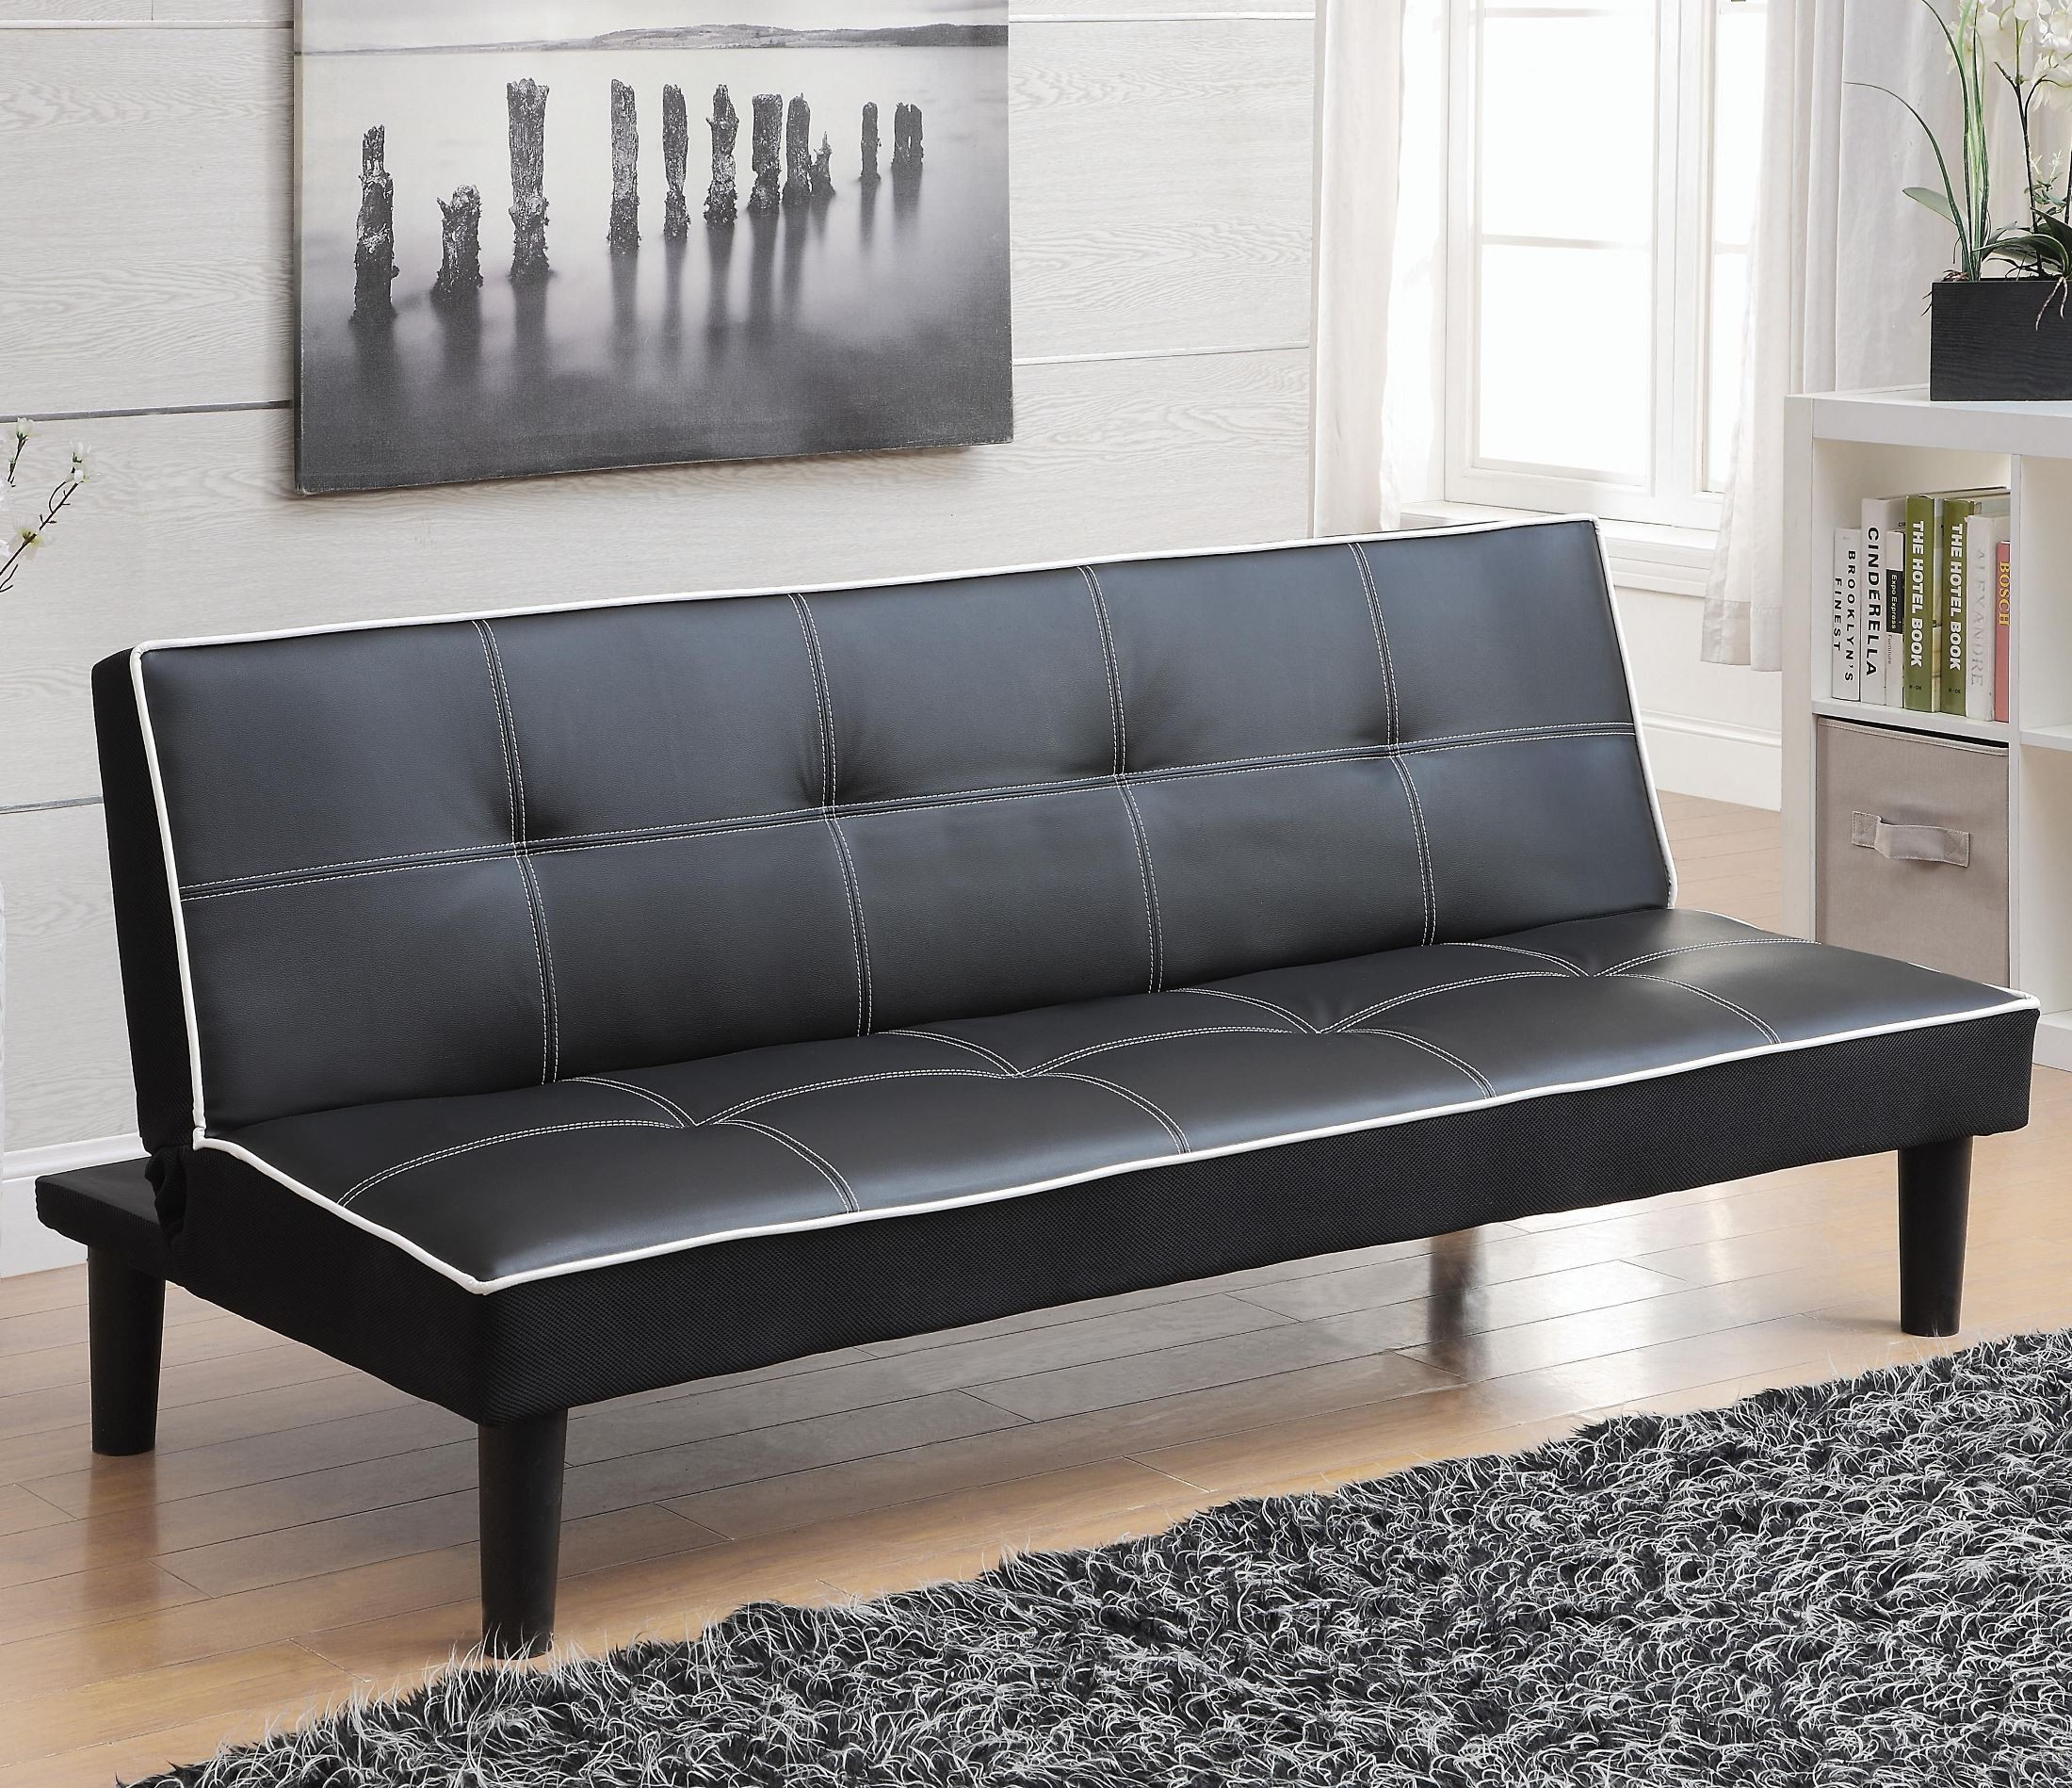 550044 black leatherette sofa bed from coaster 550044 for Black sofa bed